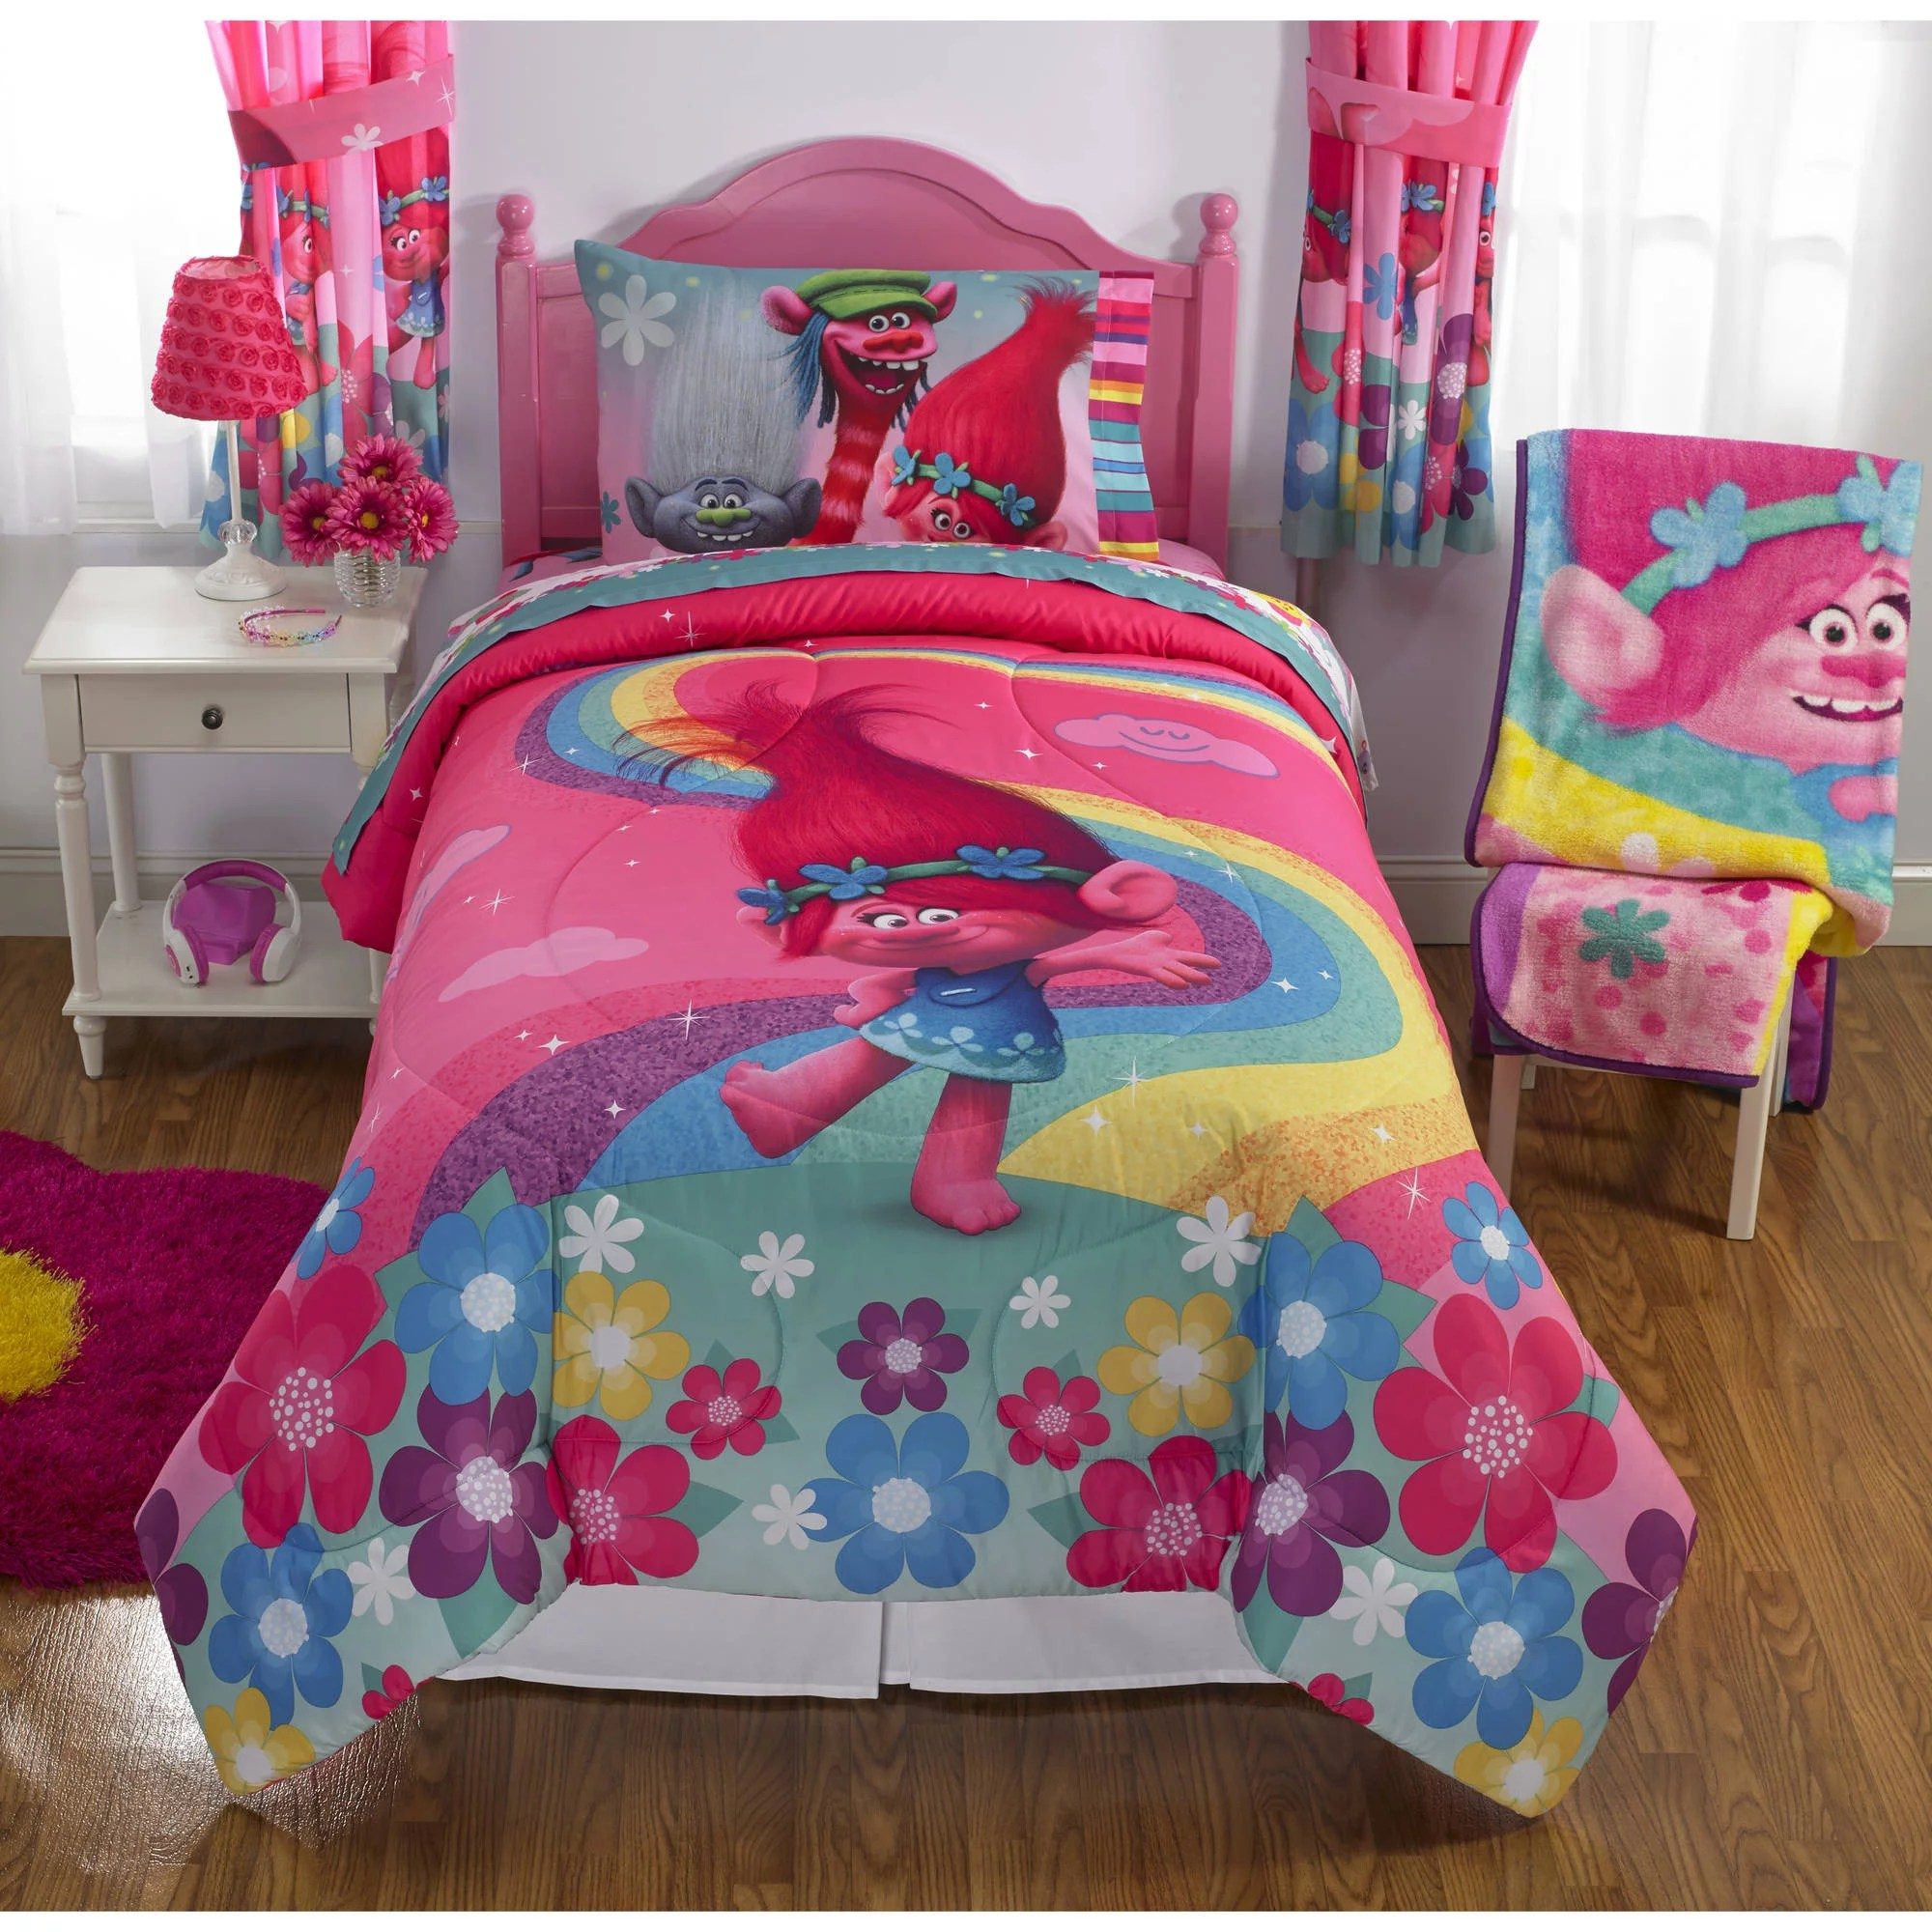 Your Choice Kids Bedding Comforter with Sheet Set Included Shopkins Frozen Paw Patrol Peppa